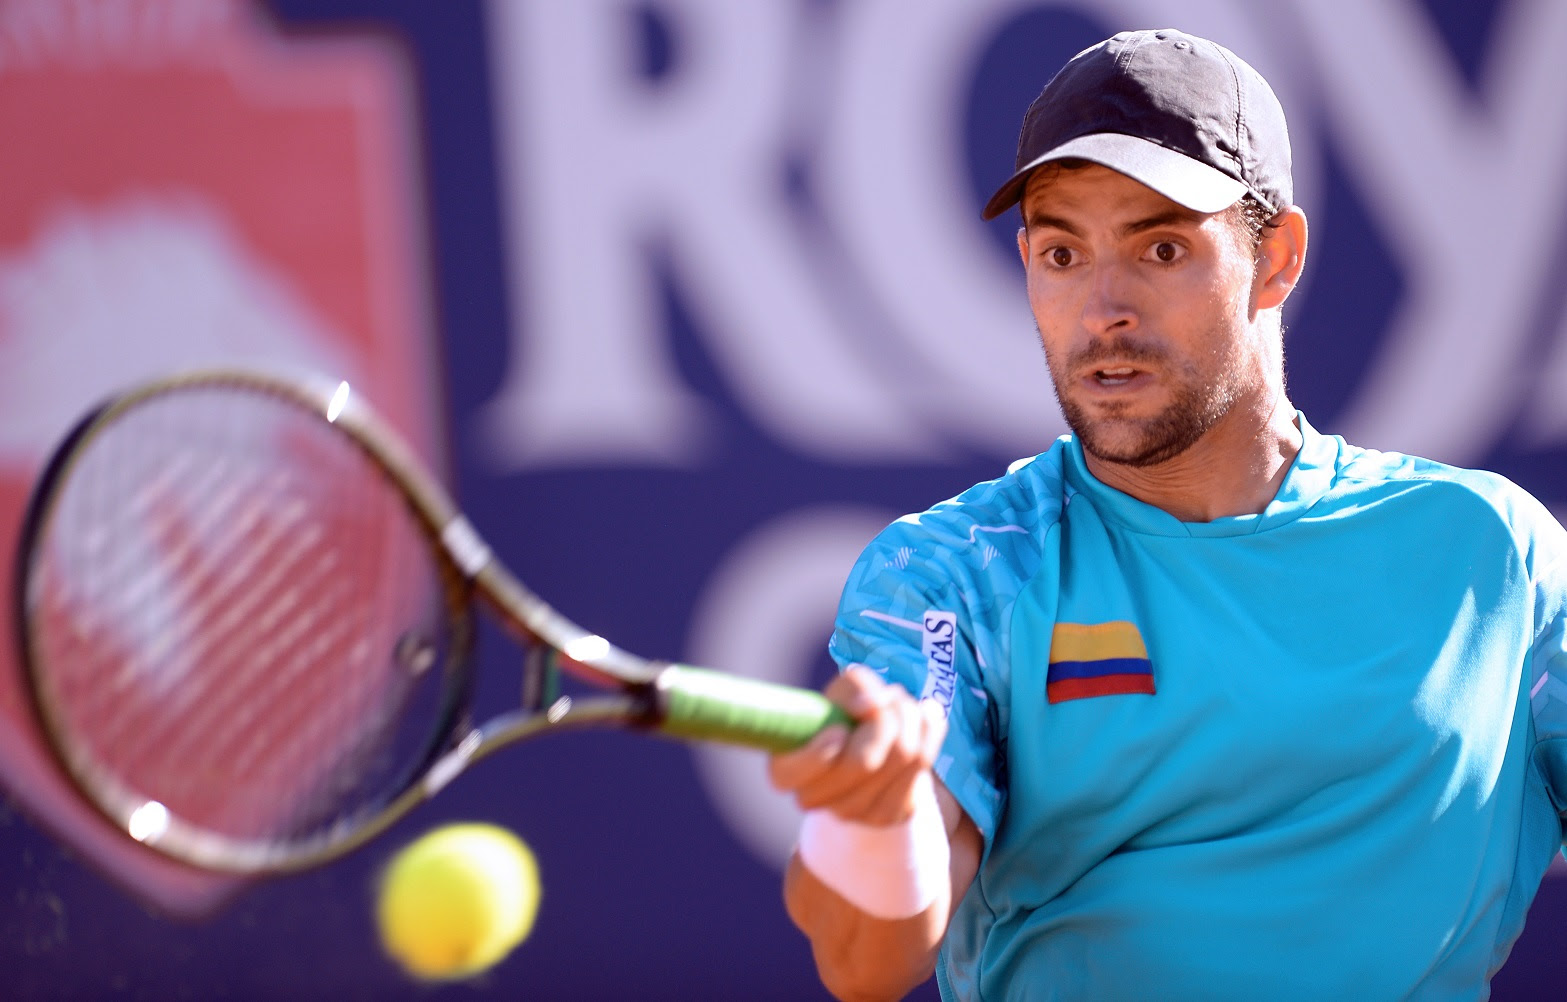 Colombia's player Santiago Giraldo returns the ball to Leonardo Mayer from Argentina during the Vina del Mar ATP tournament semifinal singles match, in Vina del Mar, about 120 km west of Santiago, on February 8, 2014. AFP PHOTO/MARTIN BERNETTI